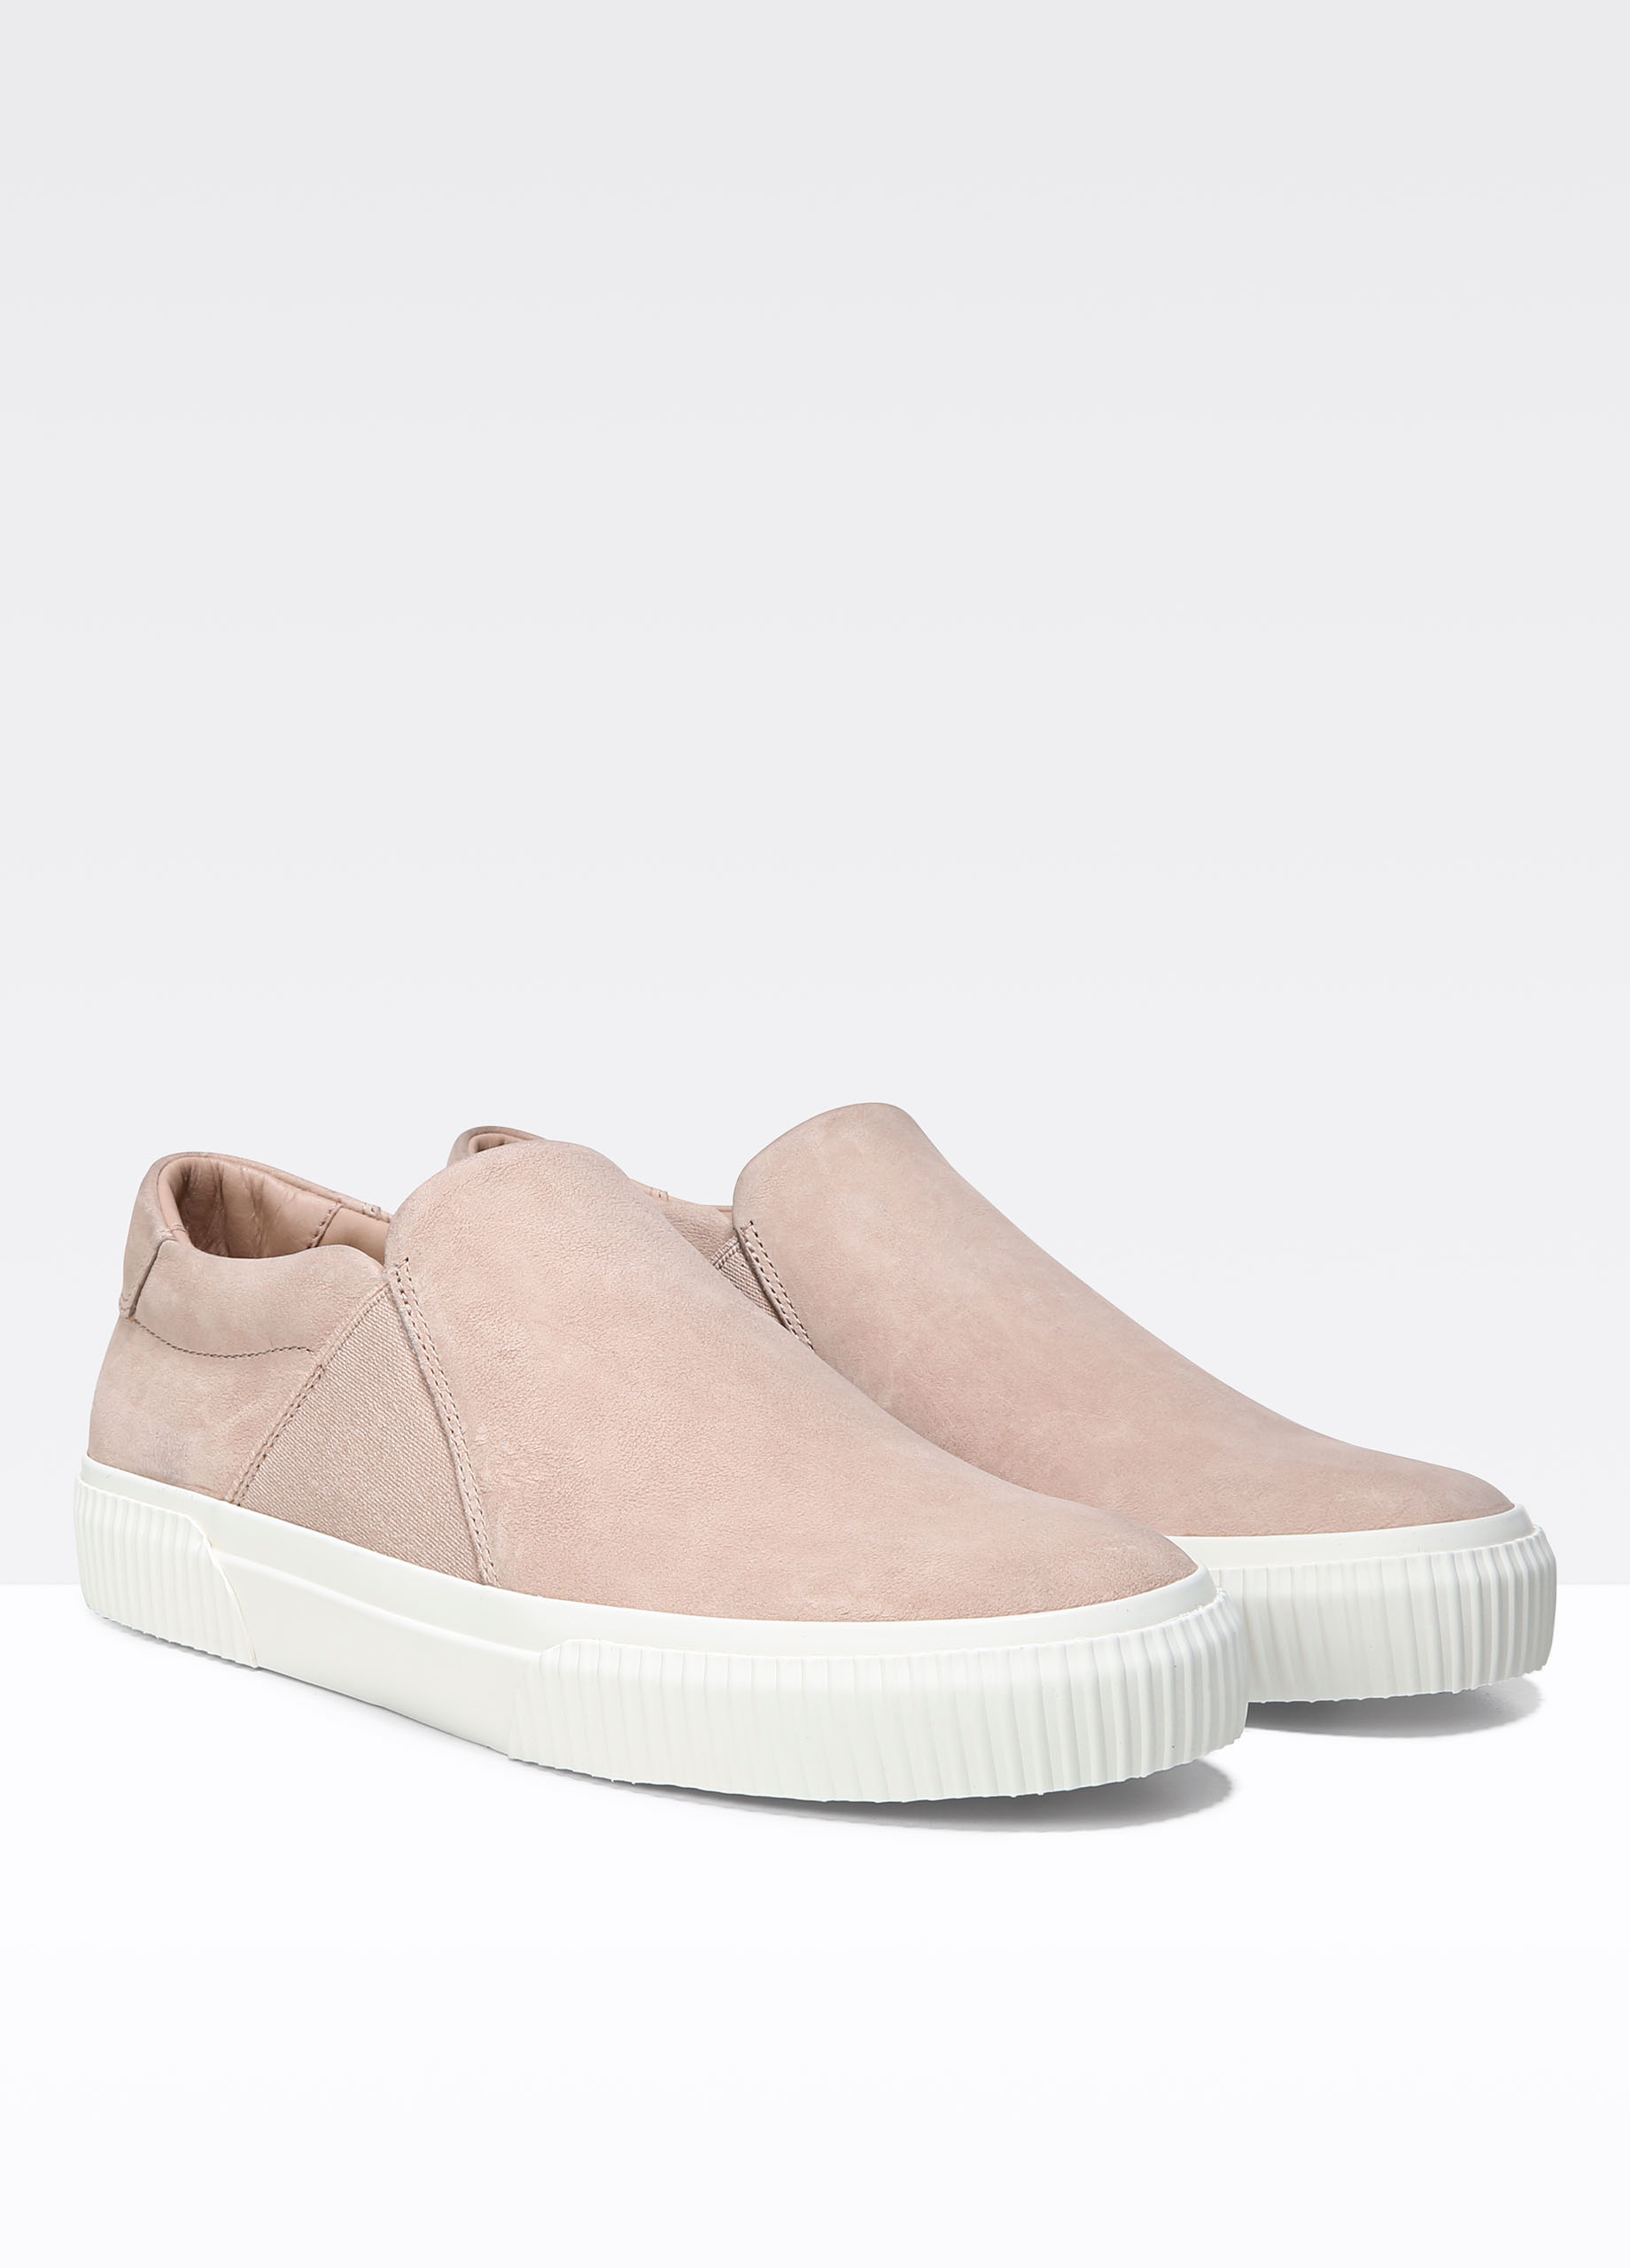 Vince Women's Knox Leather Slip-On Sneakers nAlKrs3jq